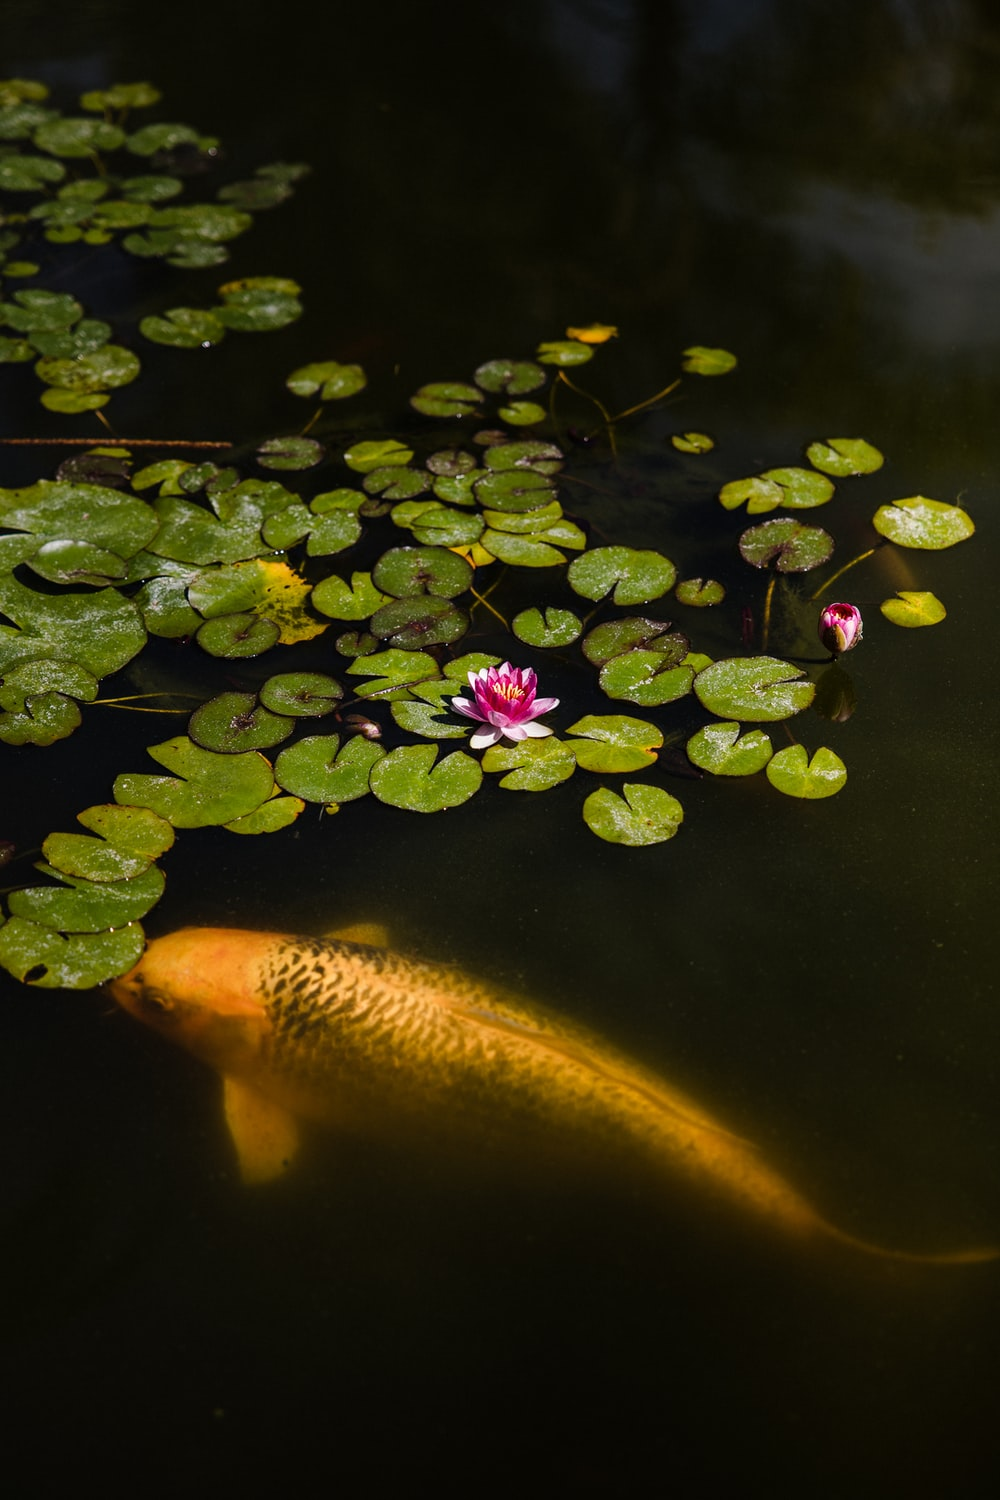 yellow and orange fish on water with pink flower petals